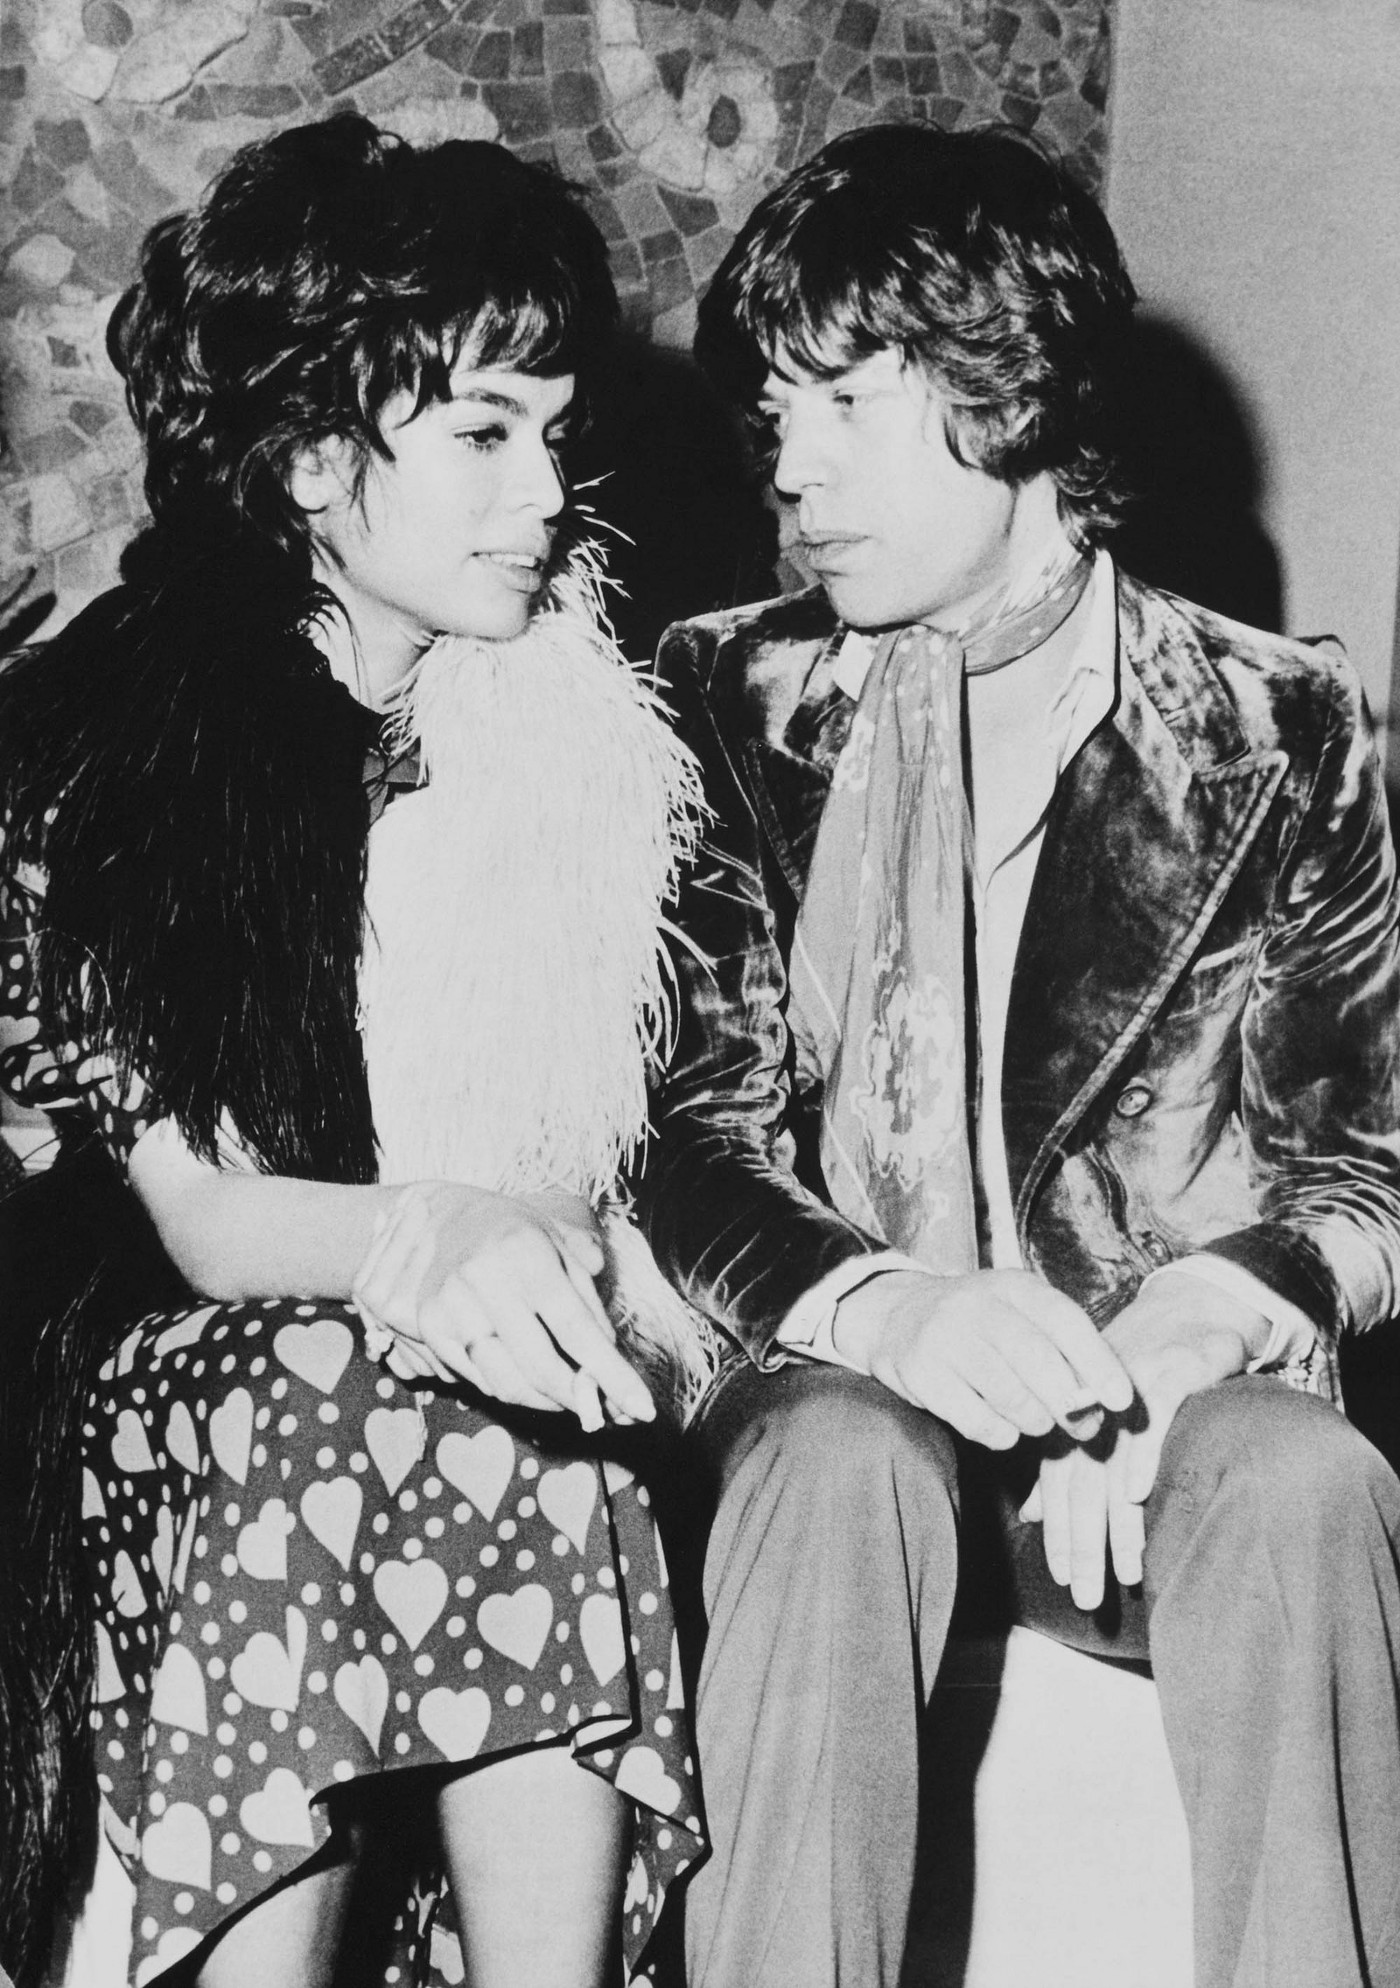 Bianca Jagger (left) in fur and a heart-patterned dress. Mick Jagger (right) wearing a velvet coat and scarf.